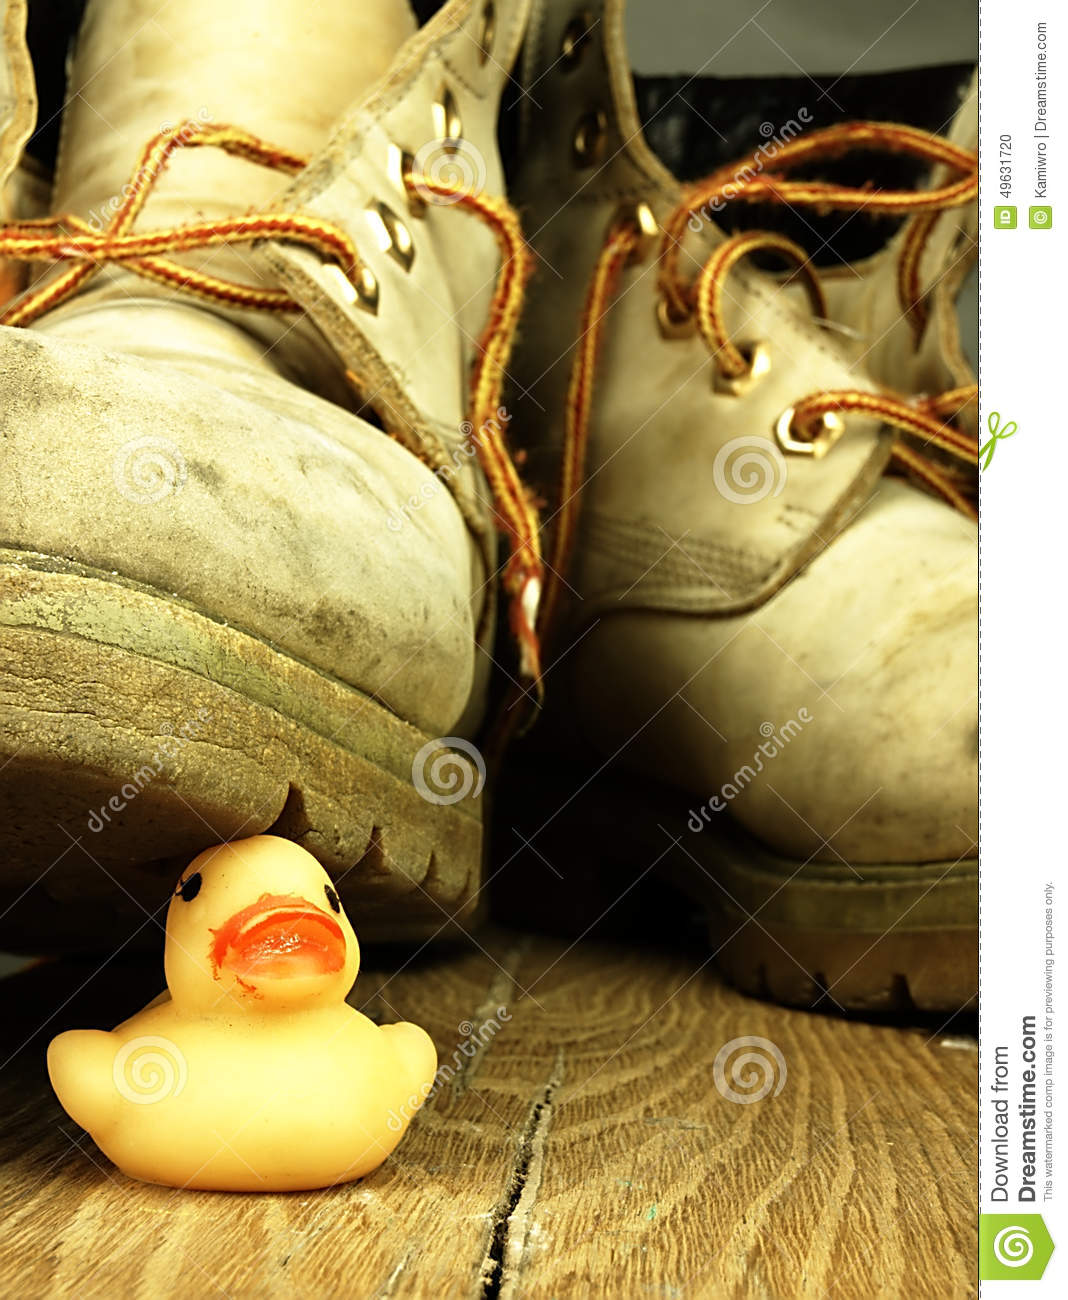 Rubber Duck Crushed By A Heavy, Old Military Boot. Stock Photo ...